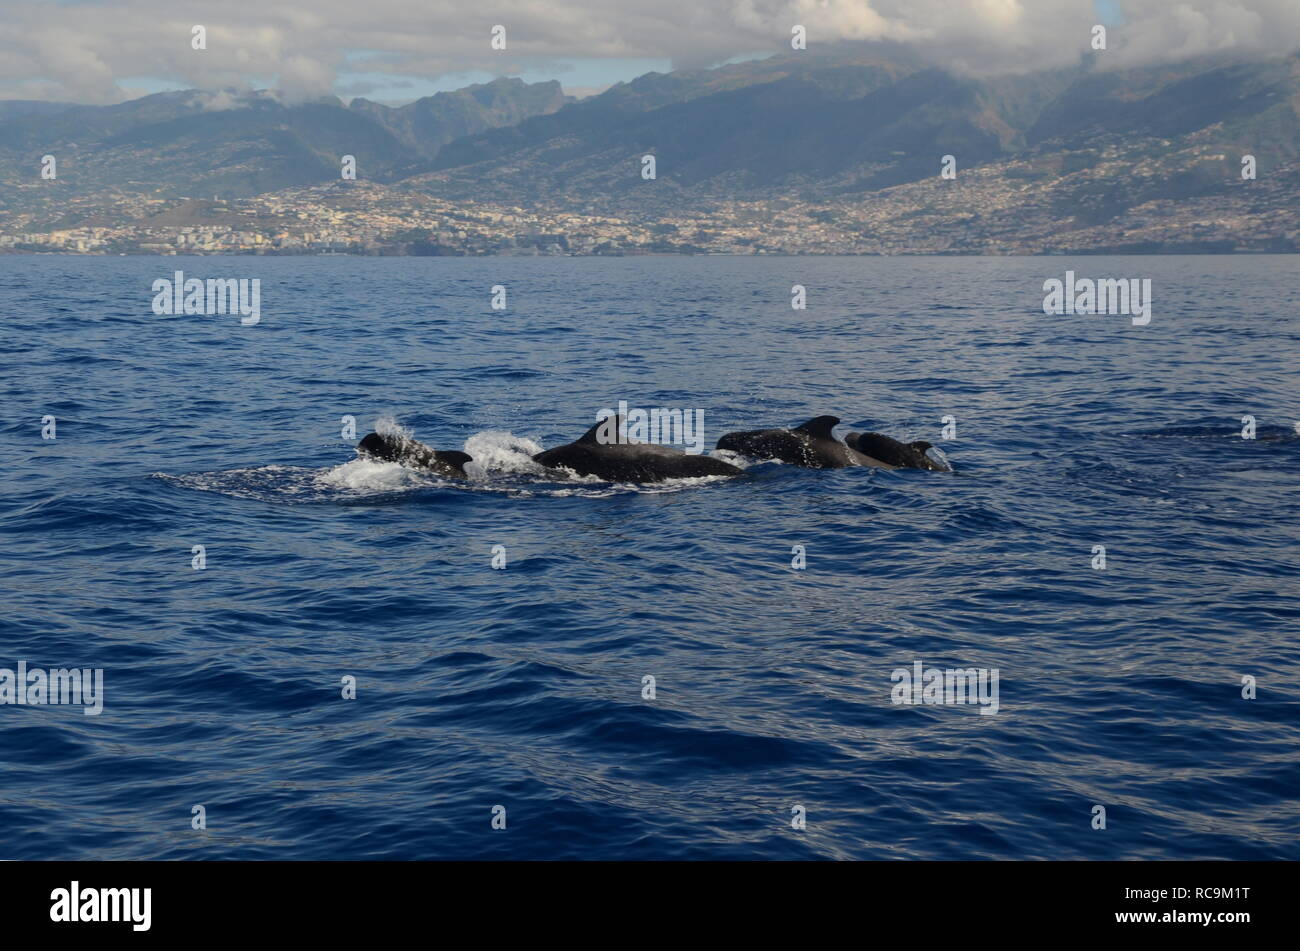 A group of tropical parrot whales at the coast of Madeira near Funcahl - Stock Image